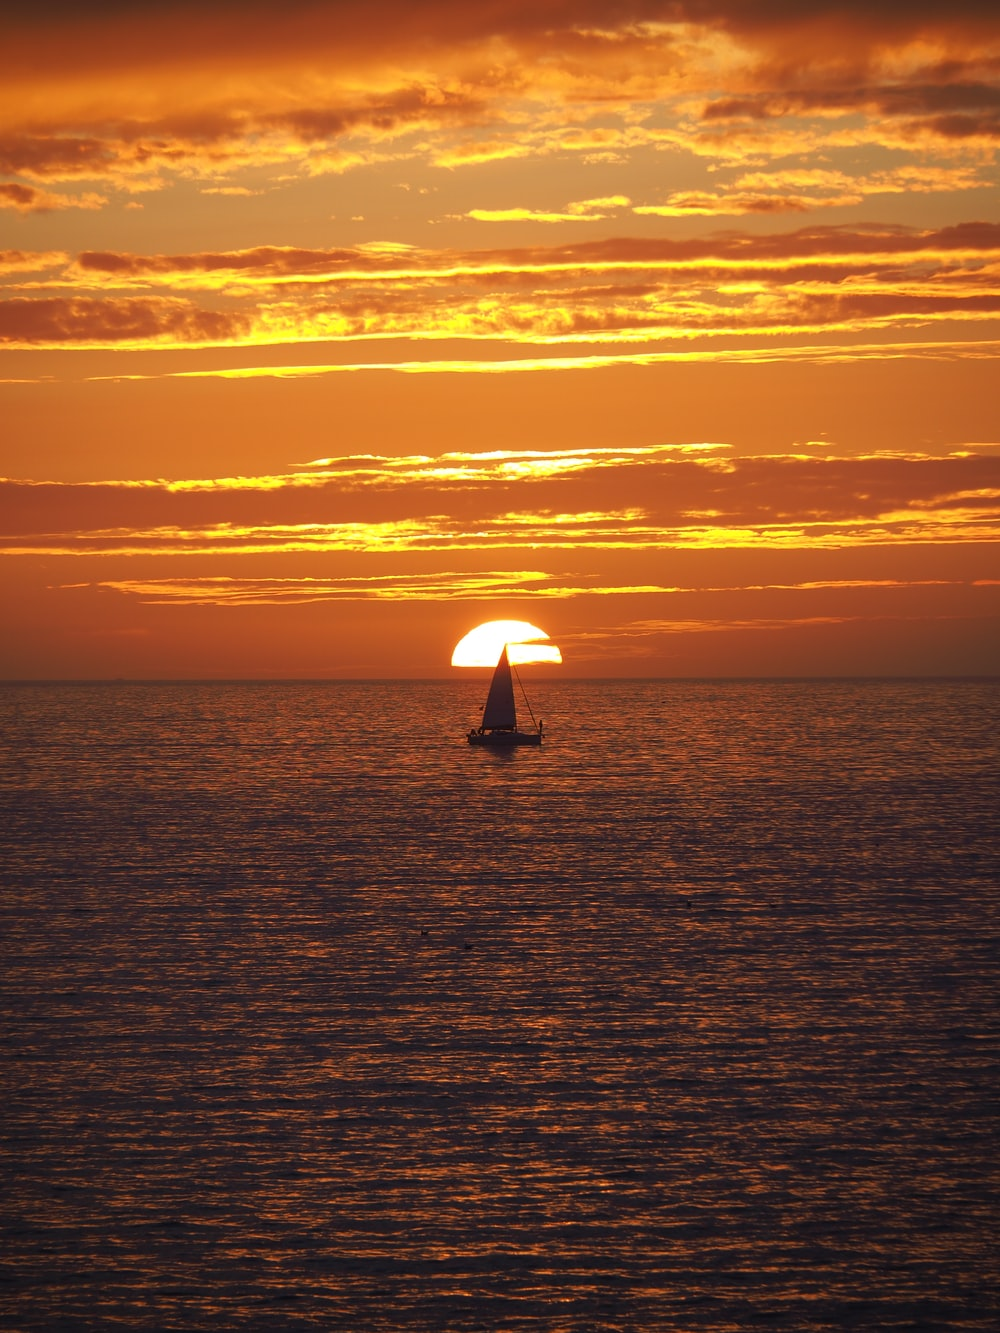 silhouette of person holding umbrella on sea during sunset